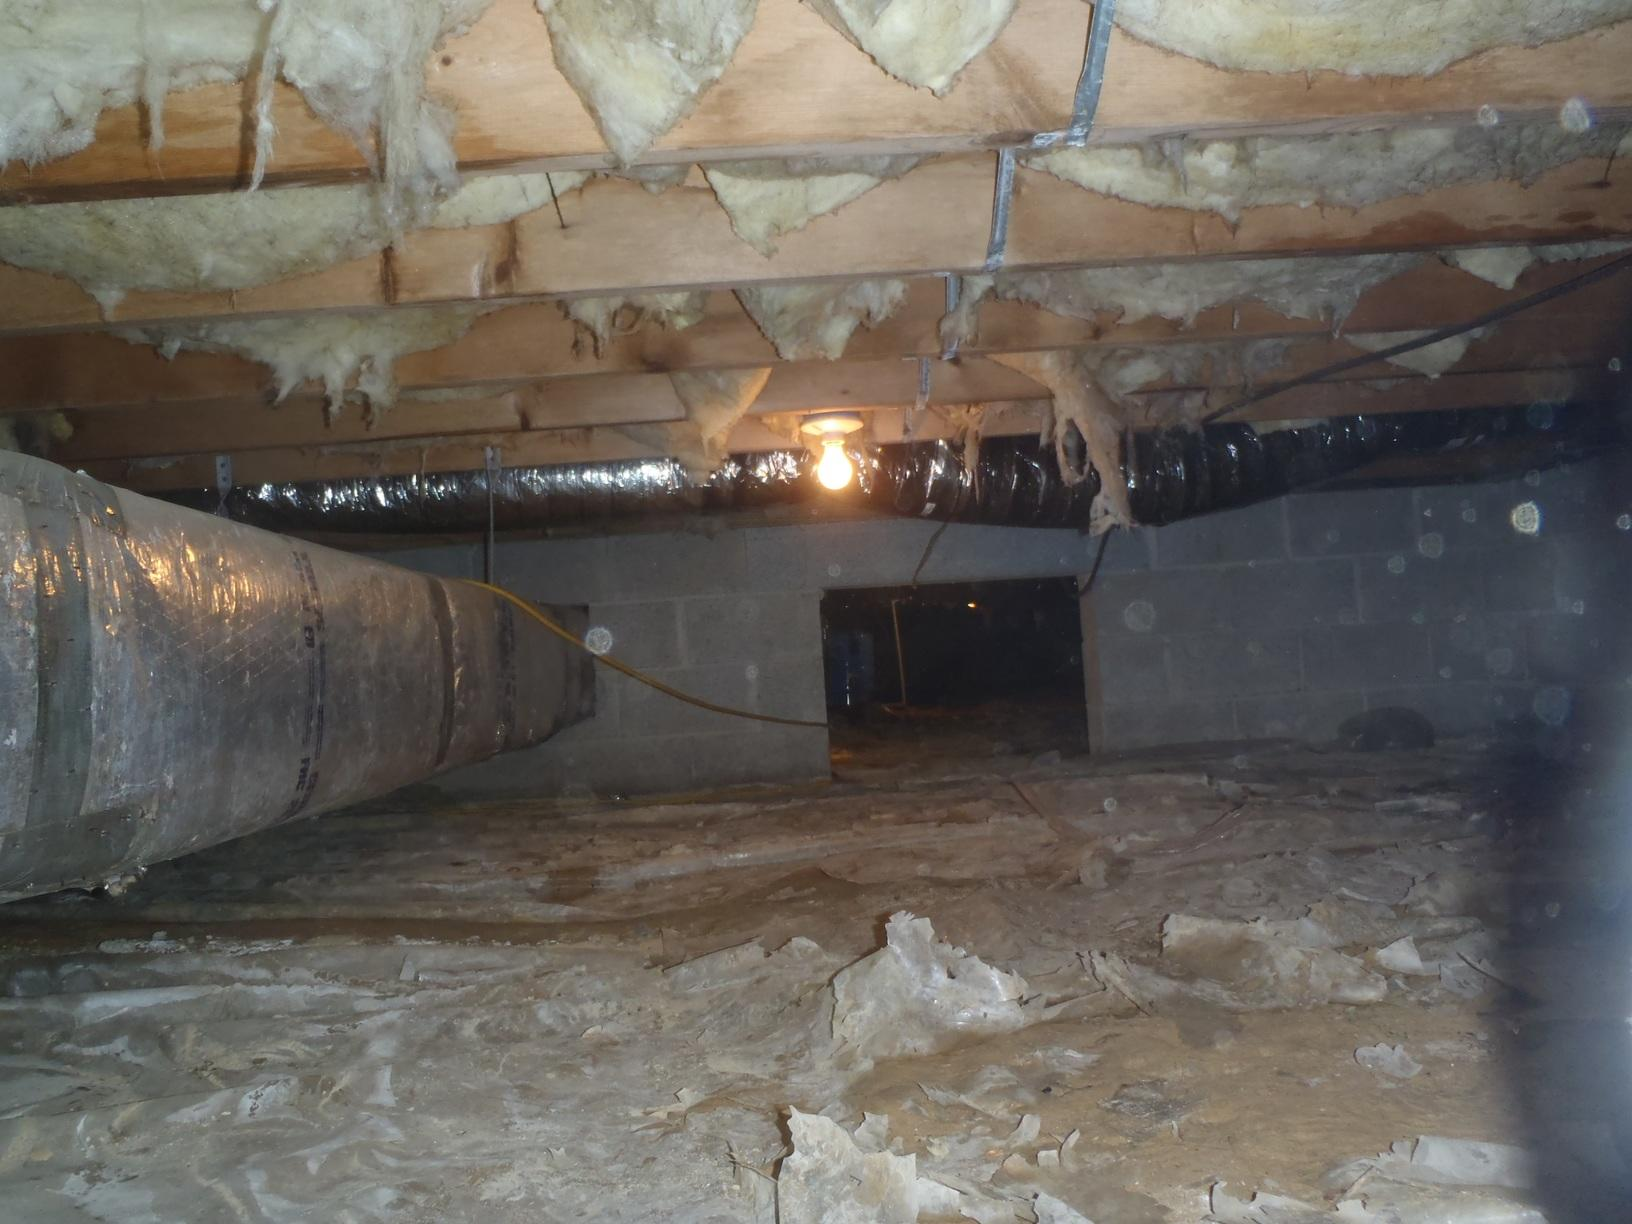 Crawl Space & Duct Cleaning in Centreville, MD. - Before Photo